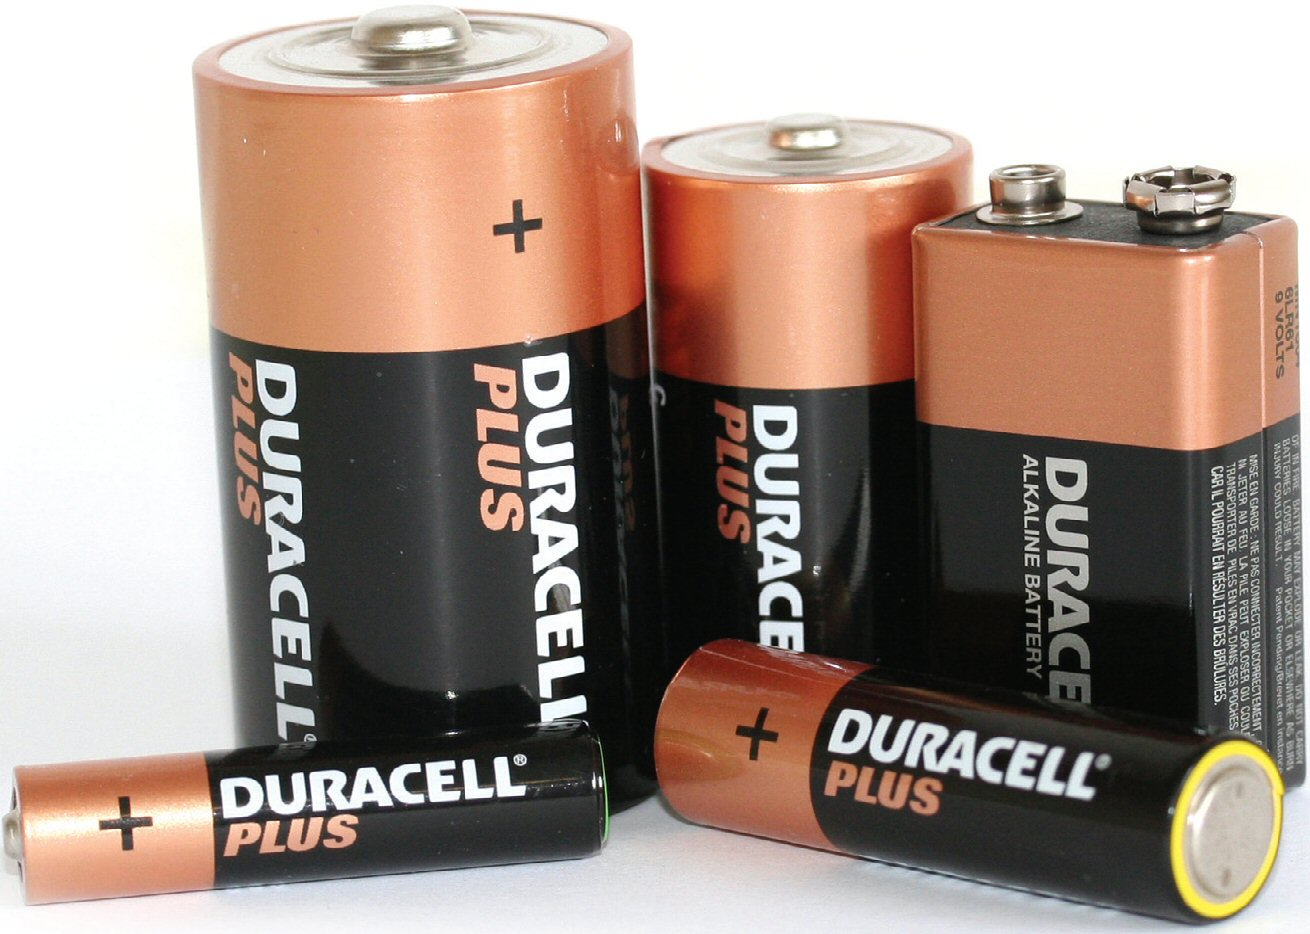 http://www.thecouponchallenge.com/wp-content/uploads/2013/07/duracell.jpg